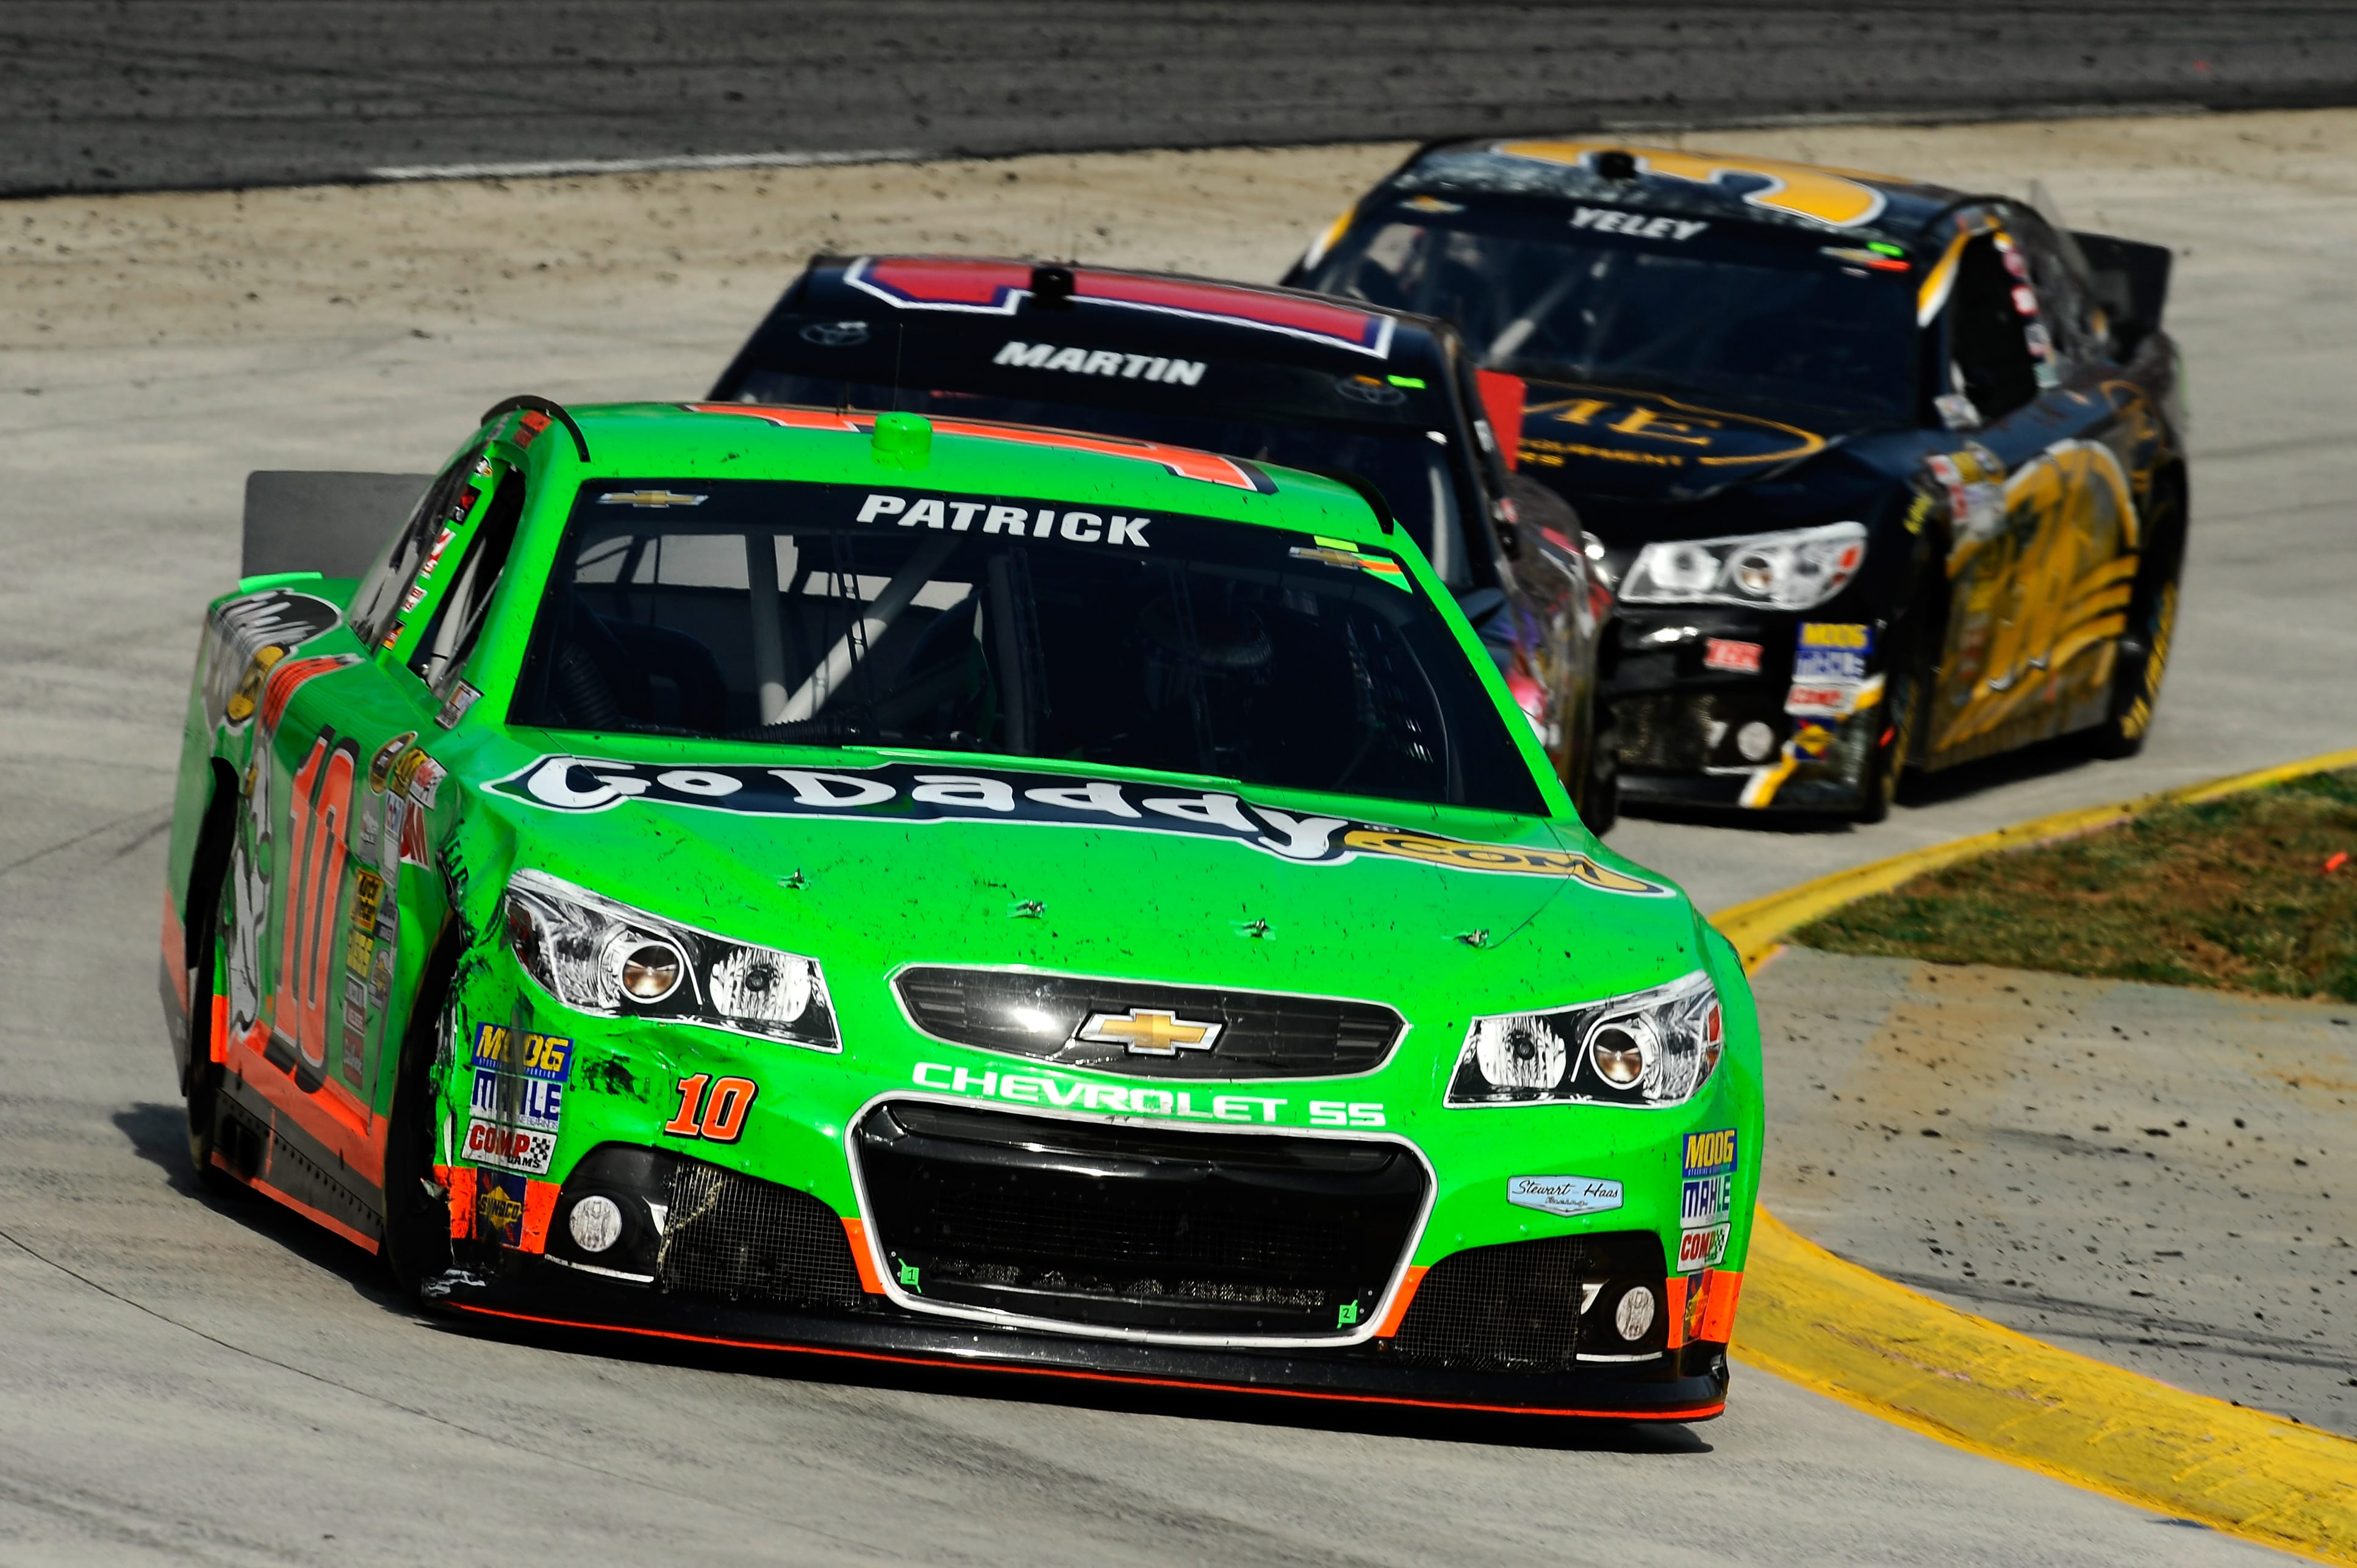 Patrick bounced back from early spin to finish 12th (Photo Credit: Jared C. Tilton/NASCAR via Getty Images)